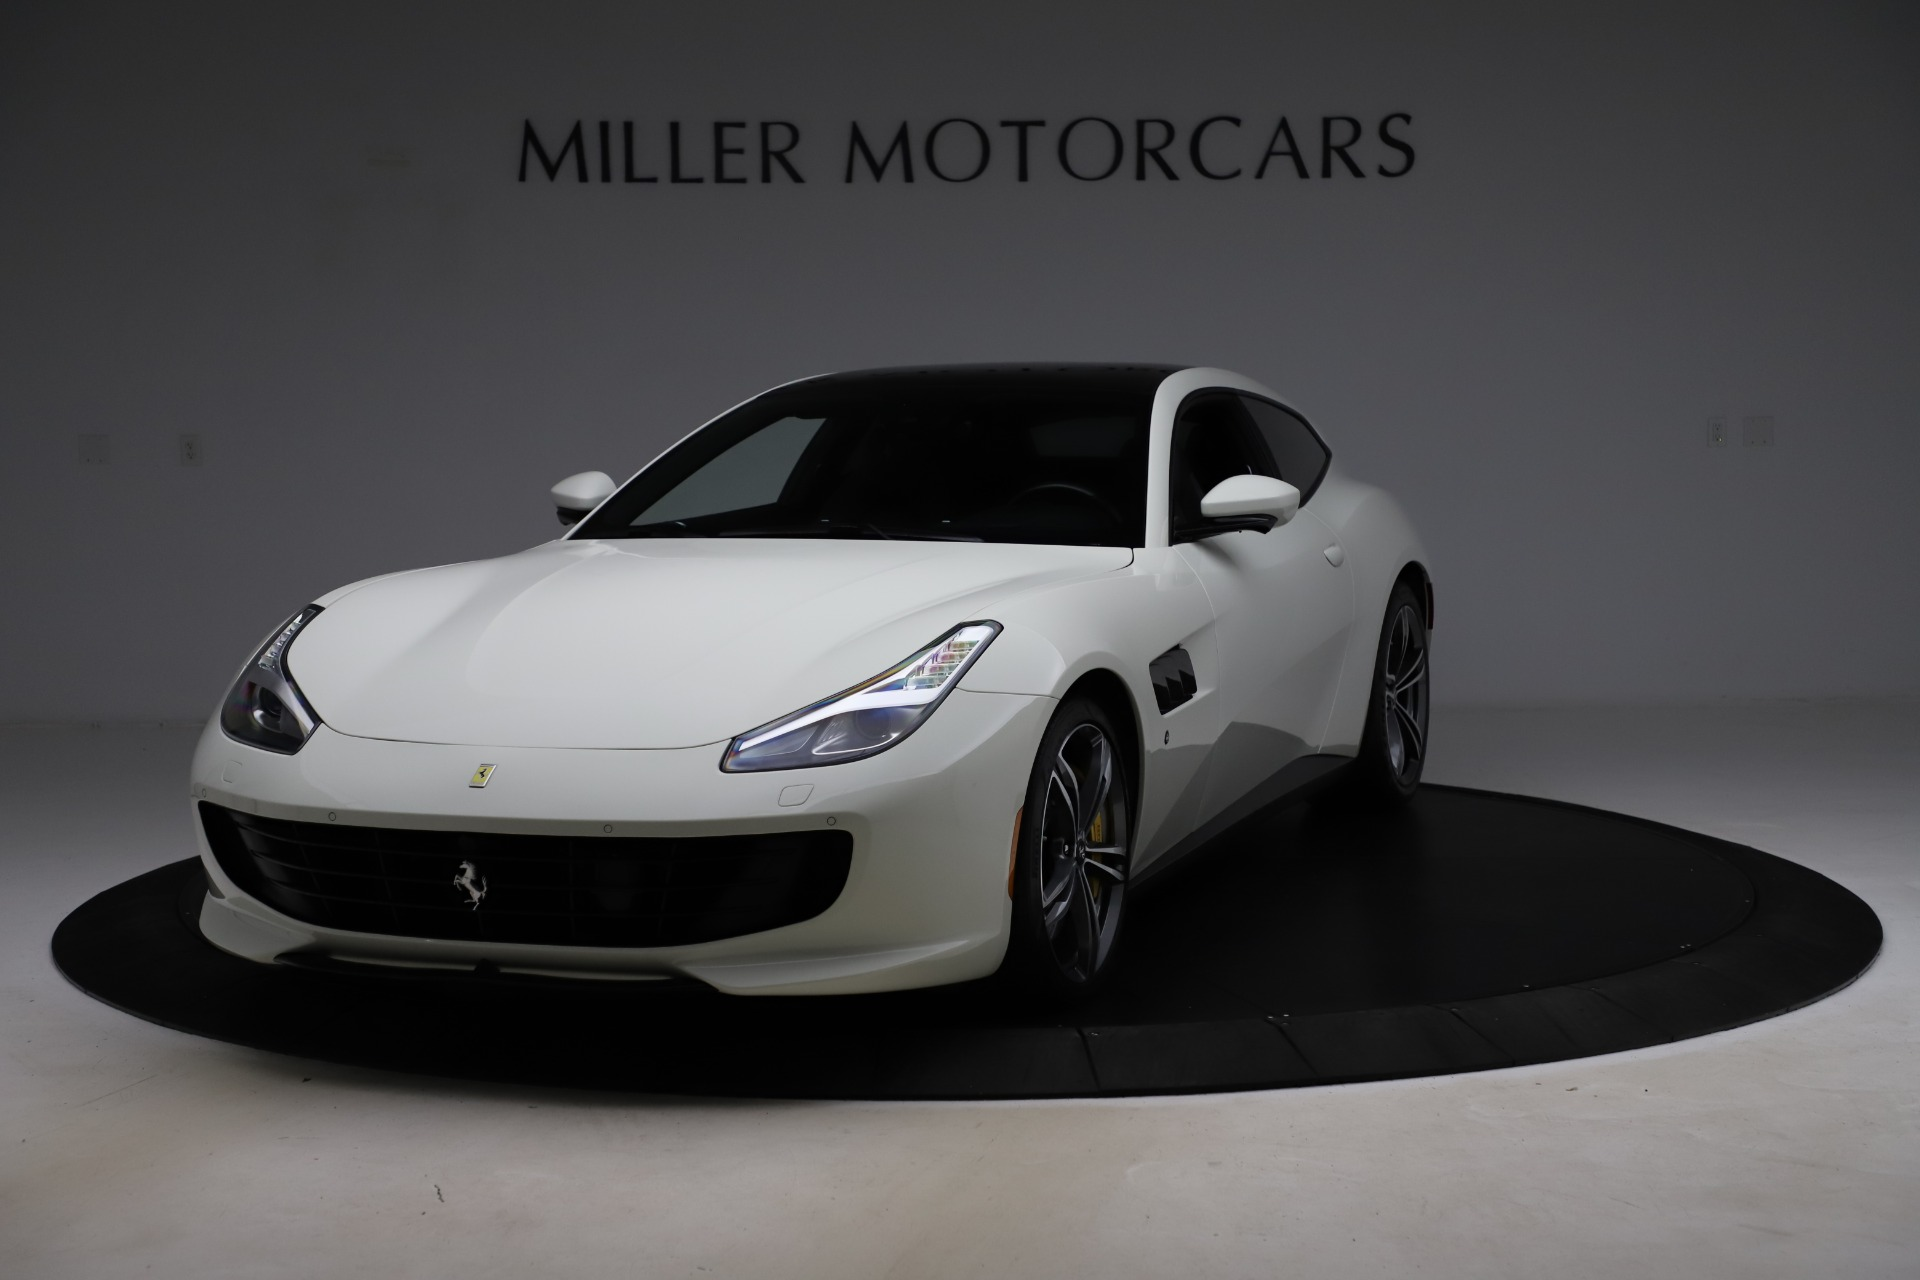 Used 2020 Ferrari GTC4Lusso for sale $264,900 at Bentley Greenwich in Greenwich CT 06830 1